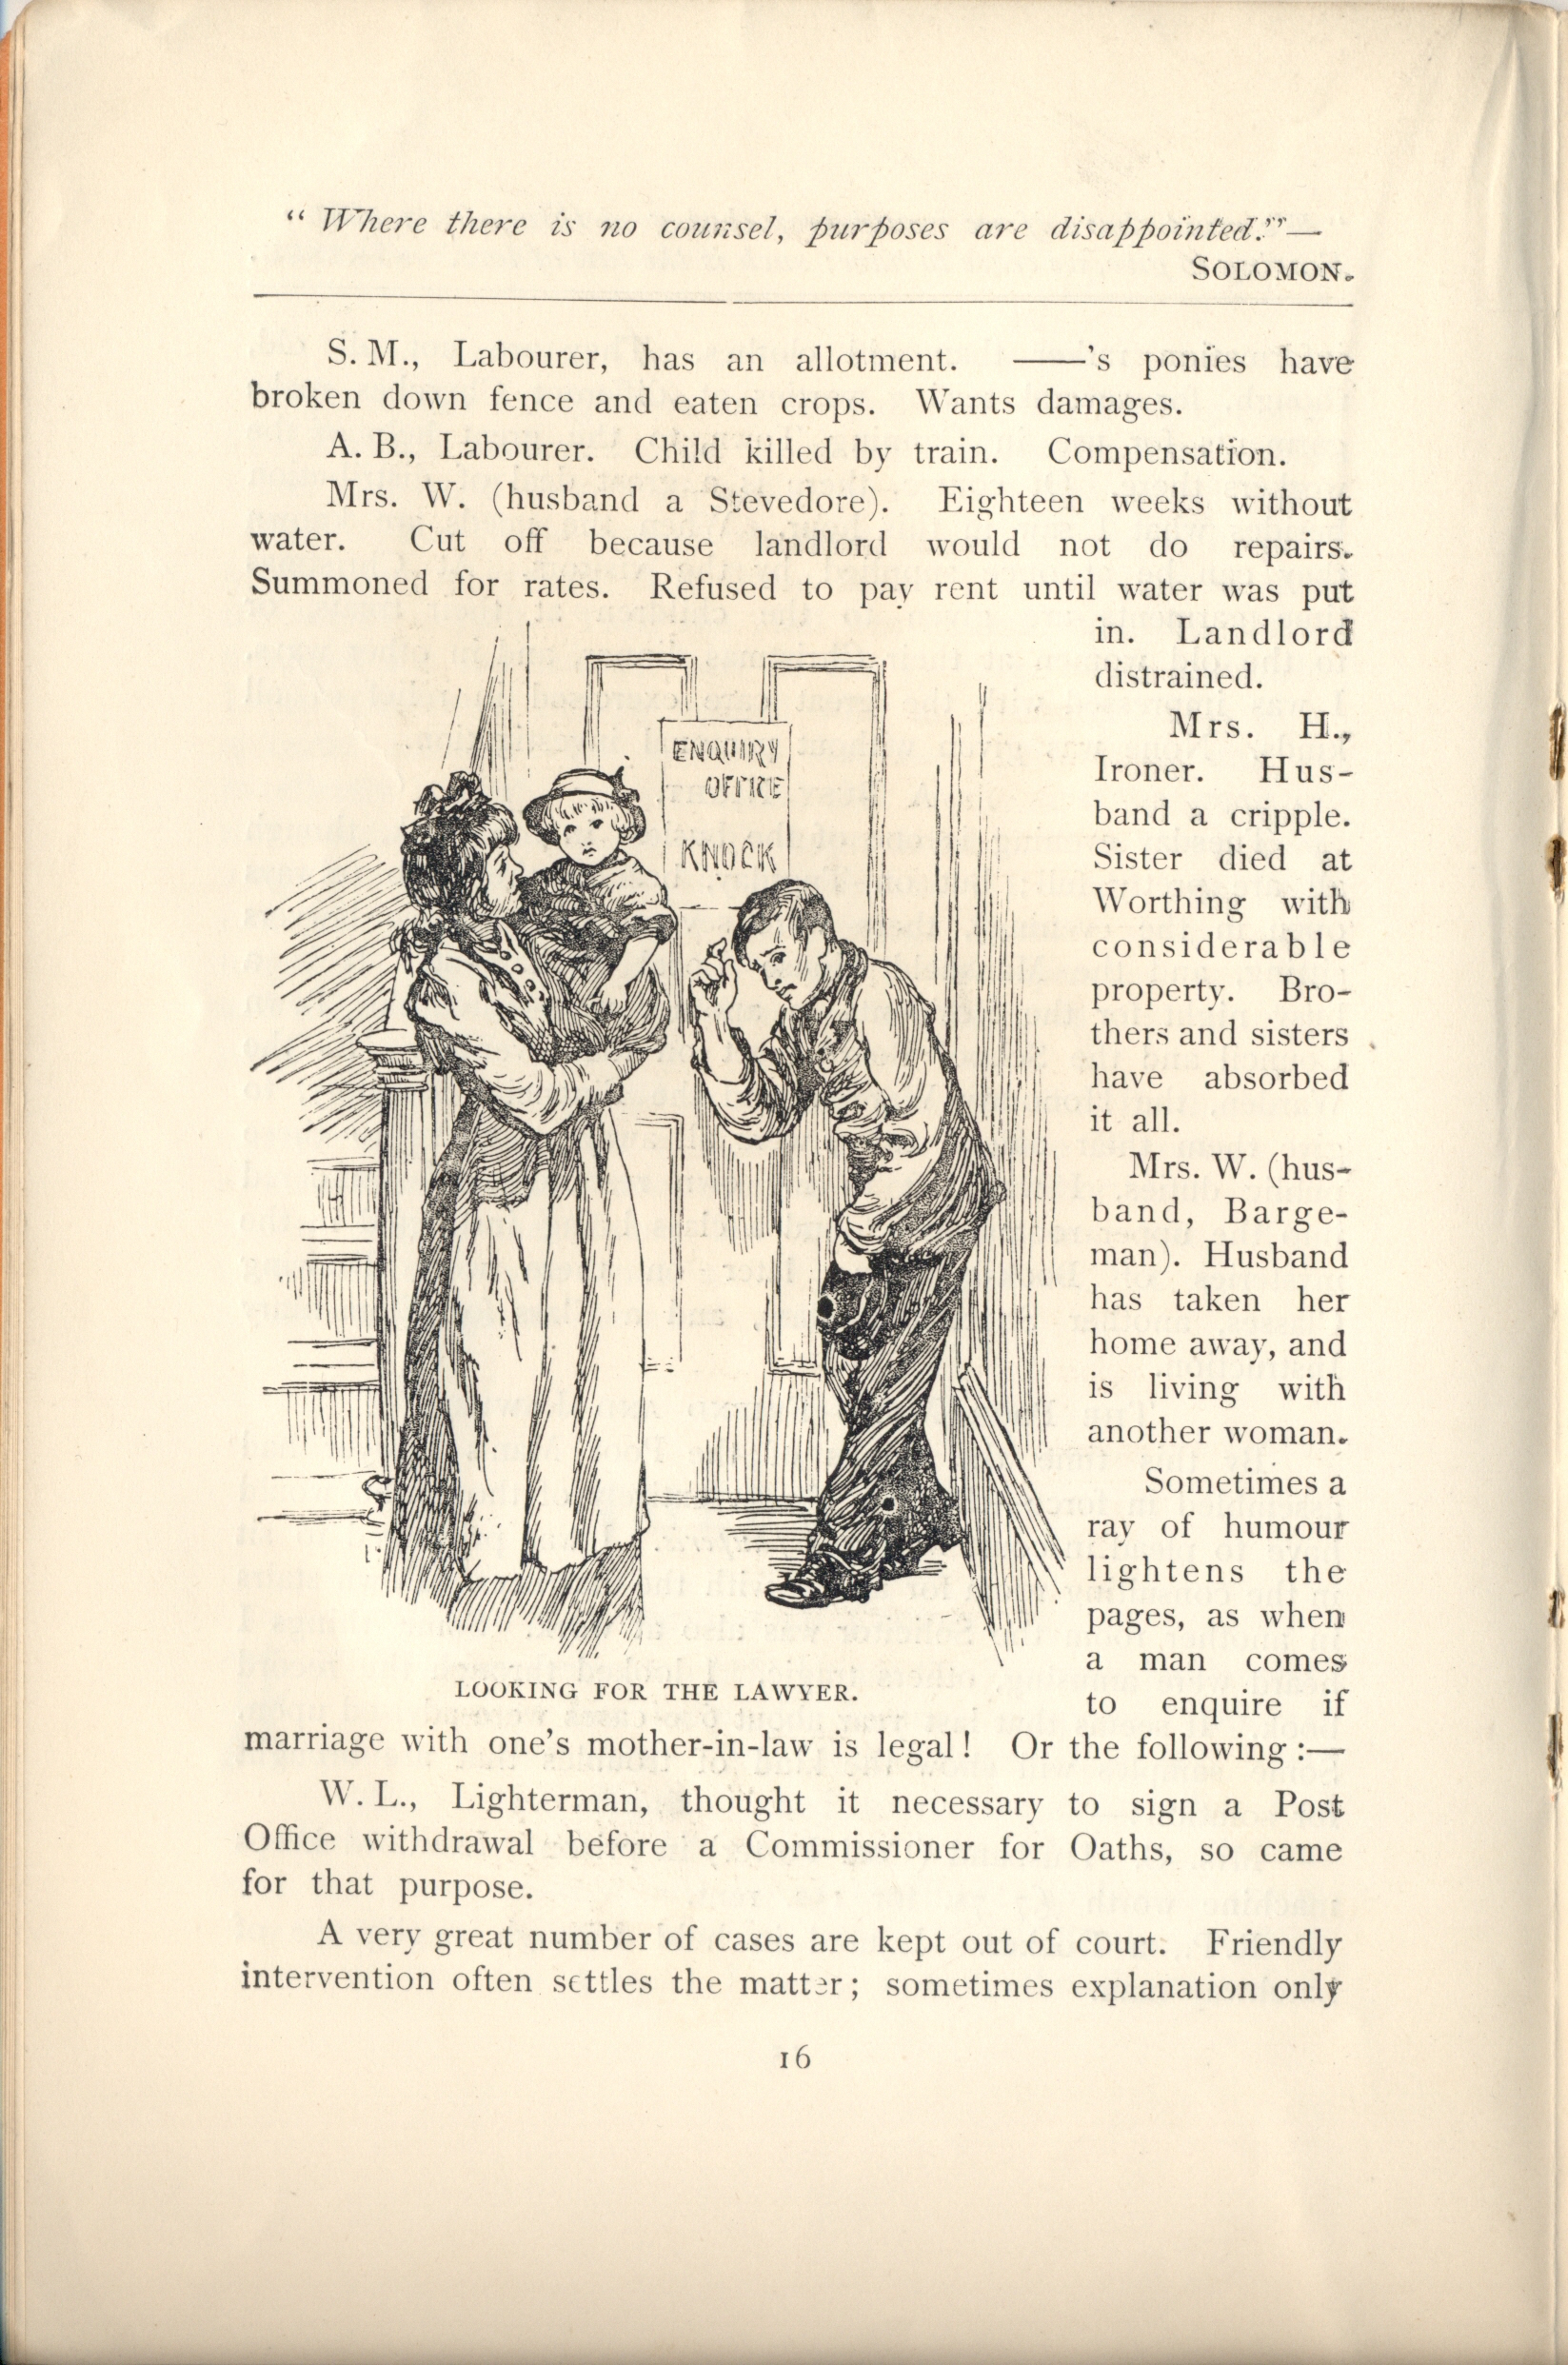 A yellowing page of a 1900s pamphlet. In the centre, a pen and ink drawing shows a woman holding a child and a man bowing slightly to them, outside a door marked 'Enquiry Office – Knock'. Around the drawing is text.